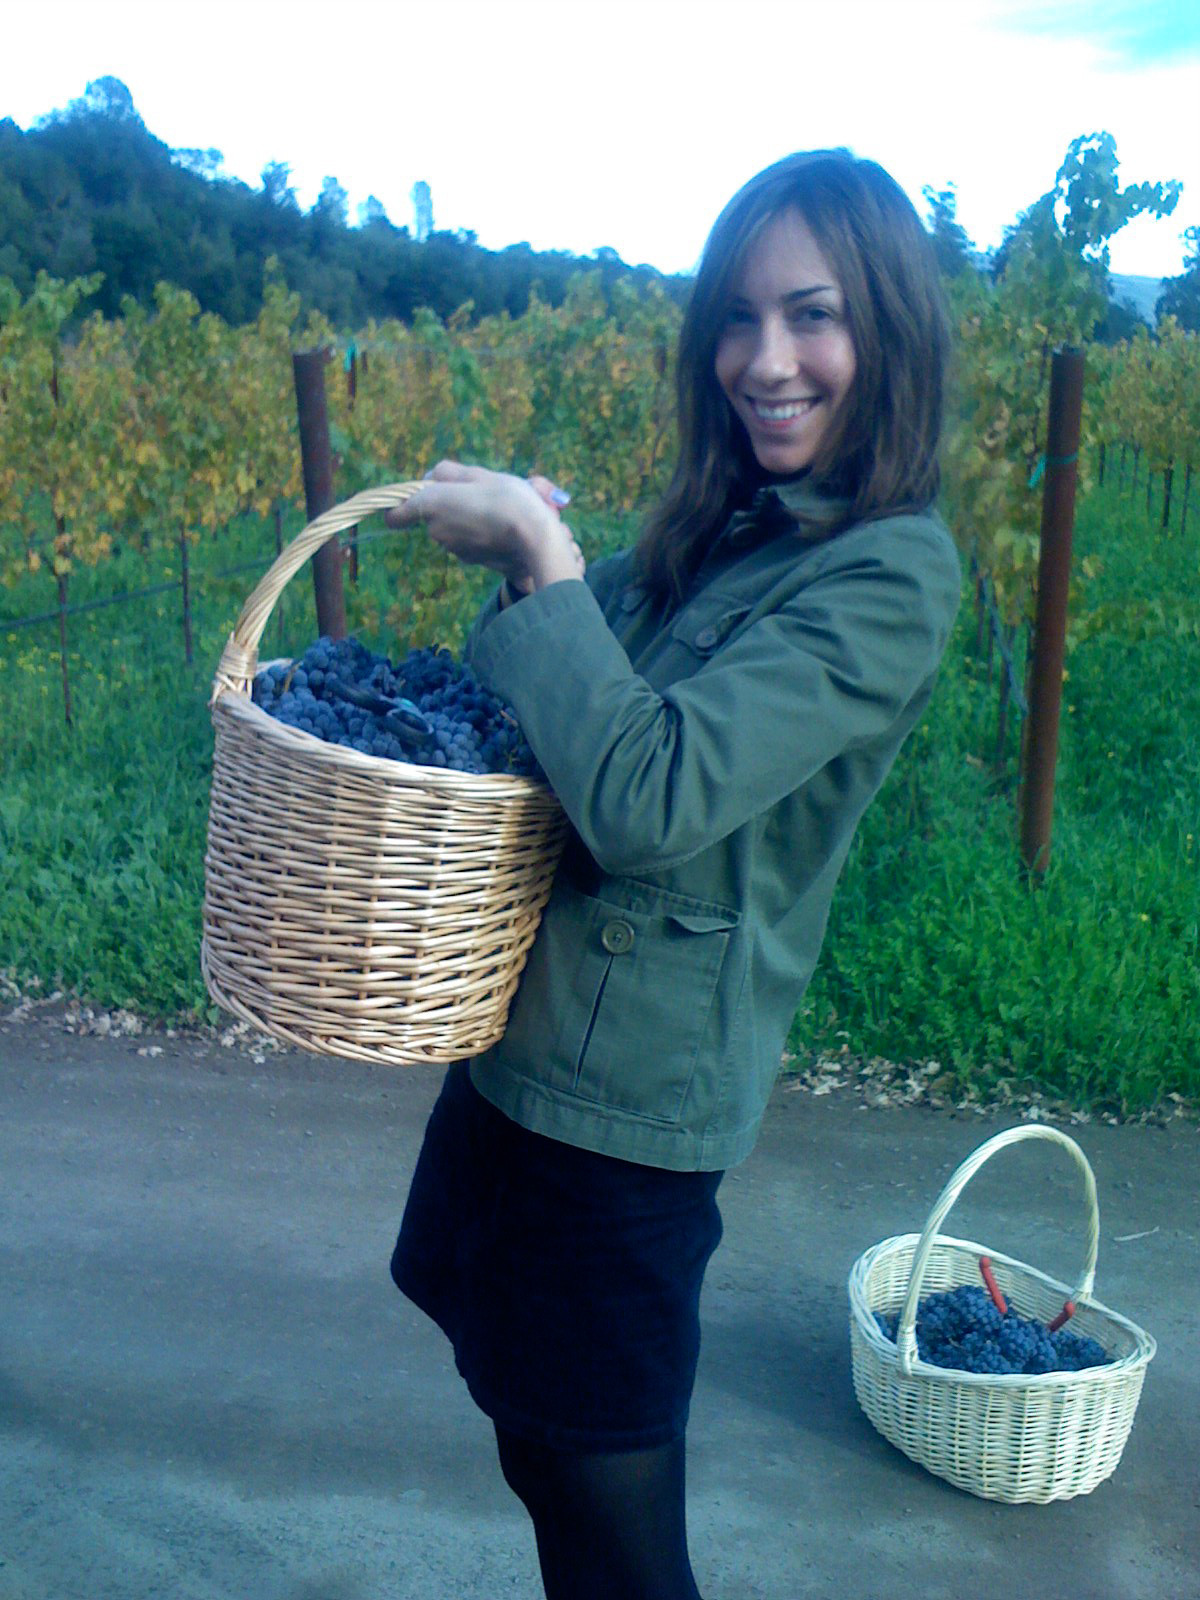 Gia holding a basket of grapes in a vineyard.